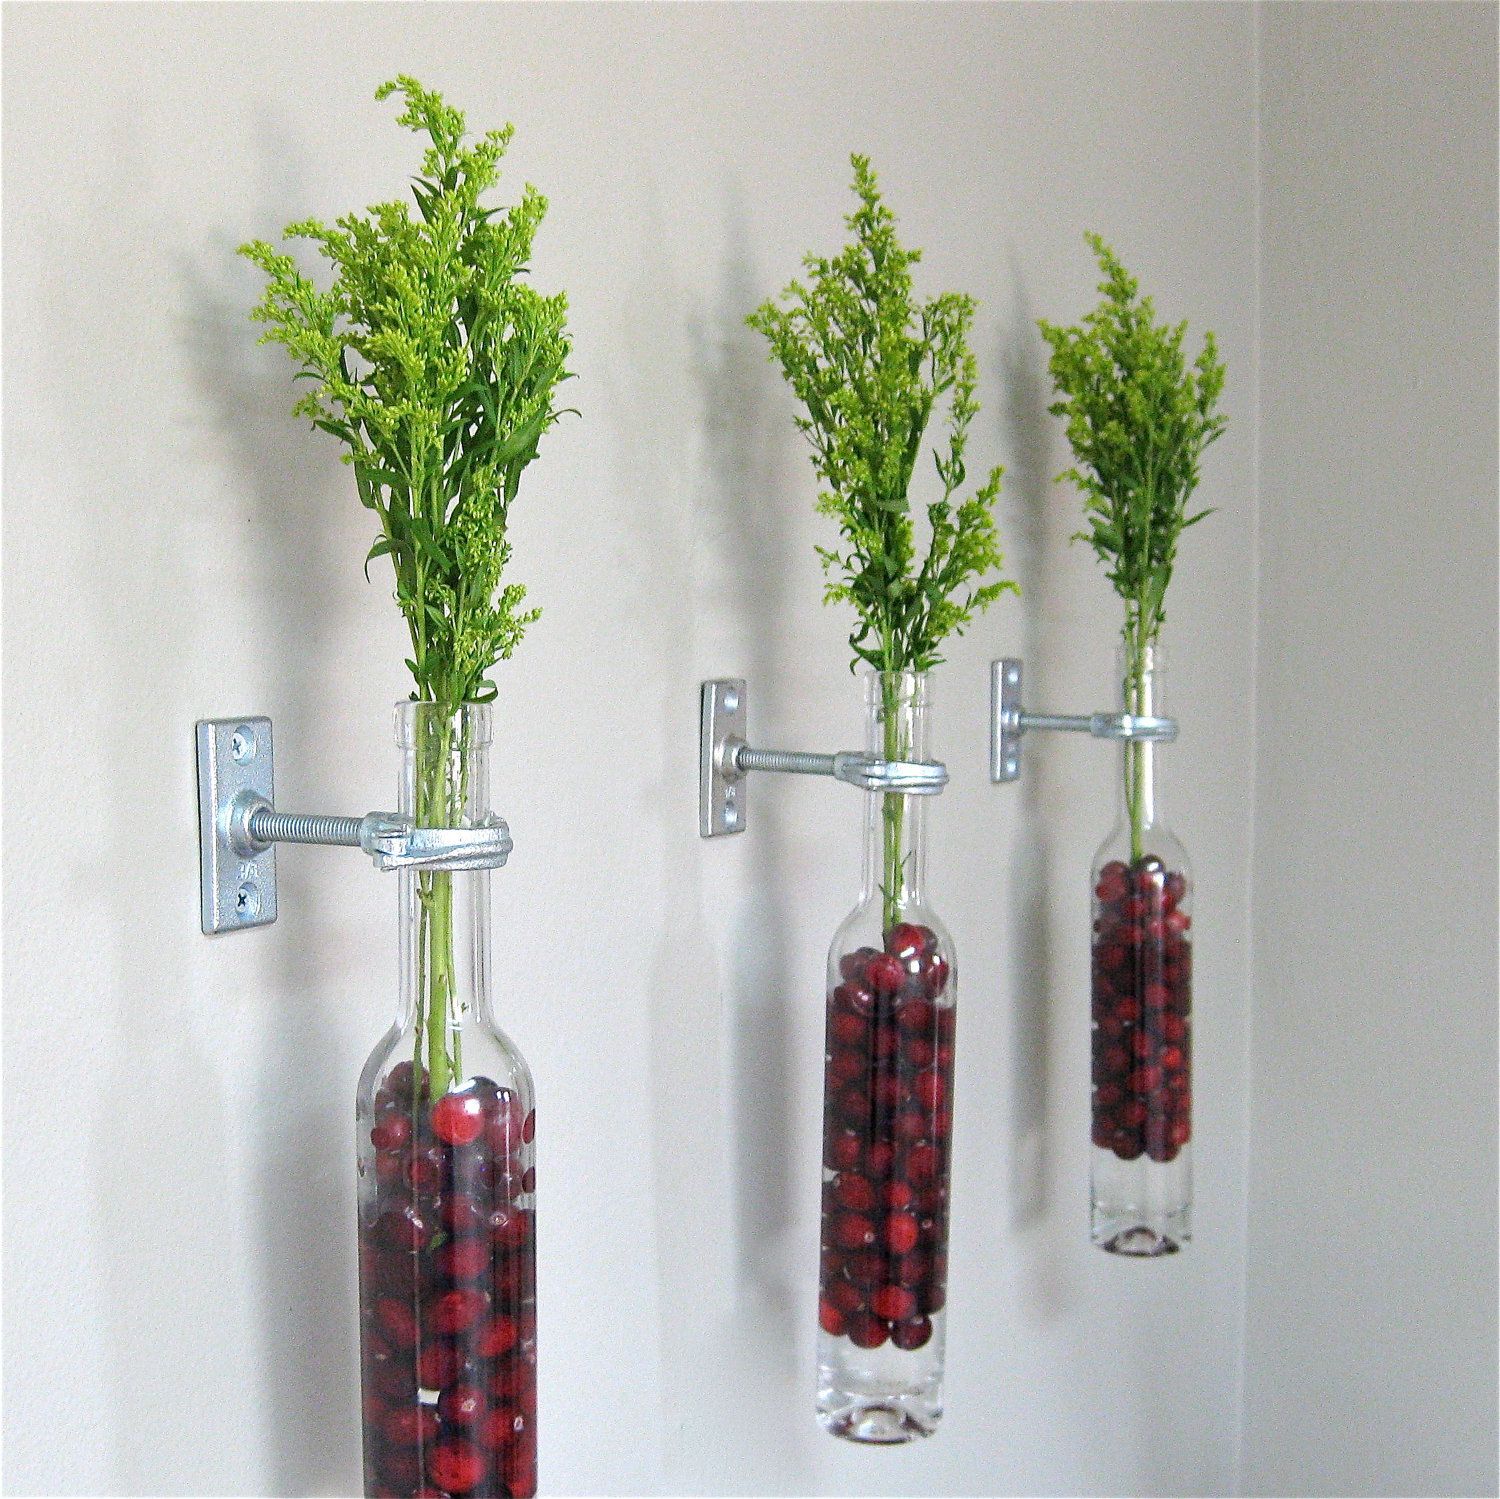 Flower Arrangements In Wine Bottles: Floral Arrangments You Could Try This Spring